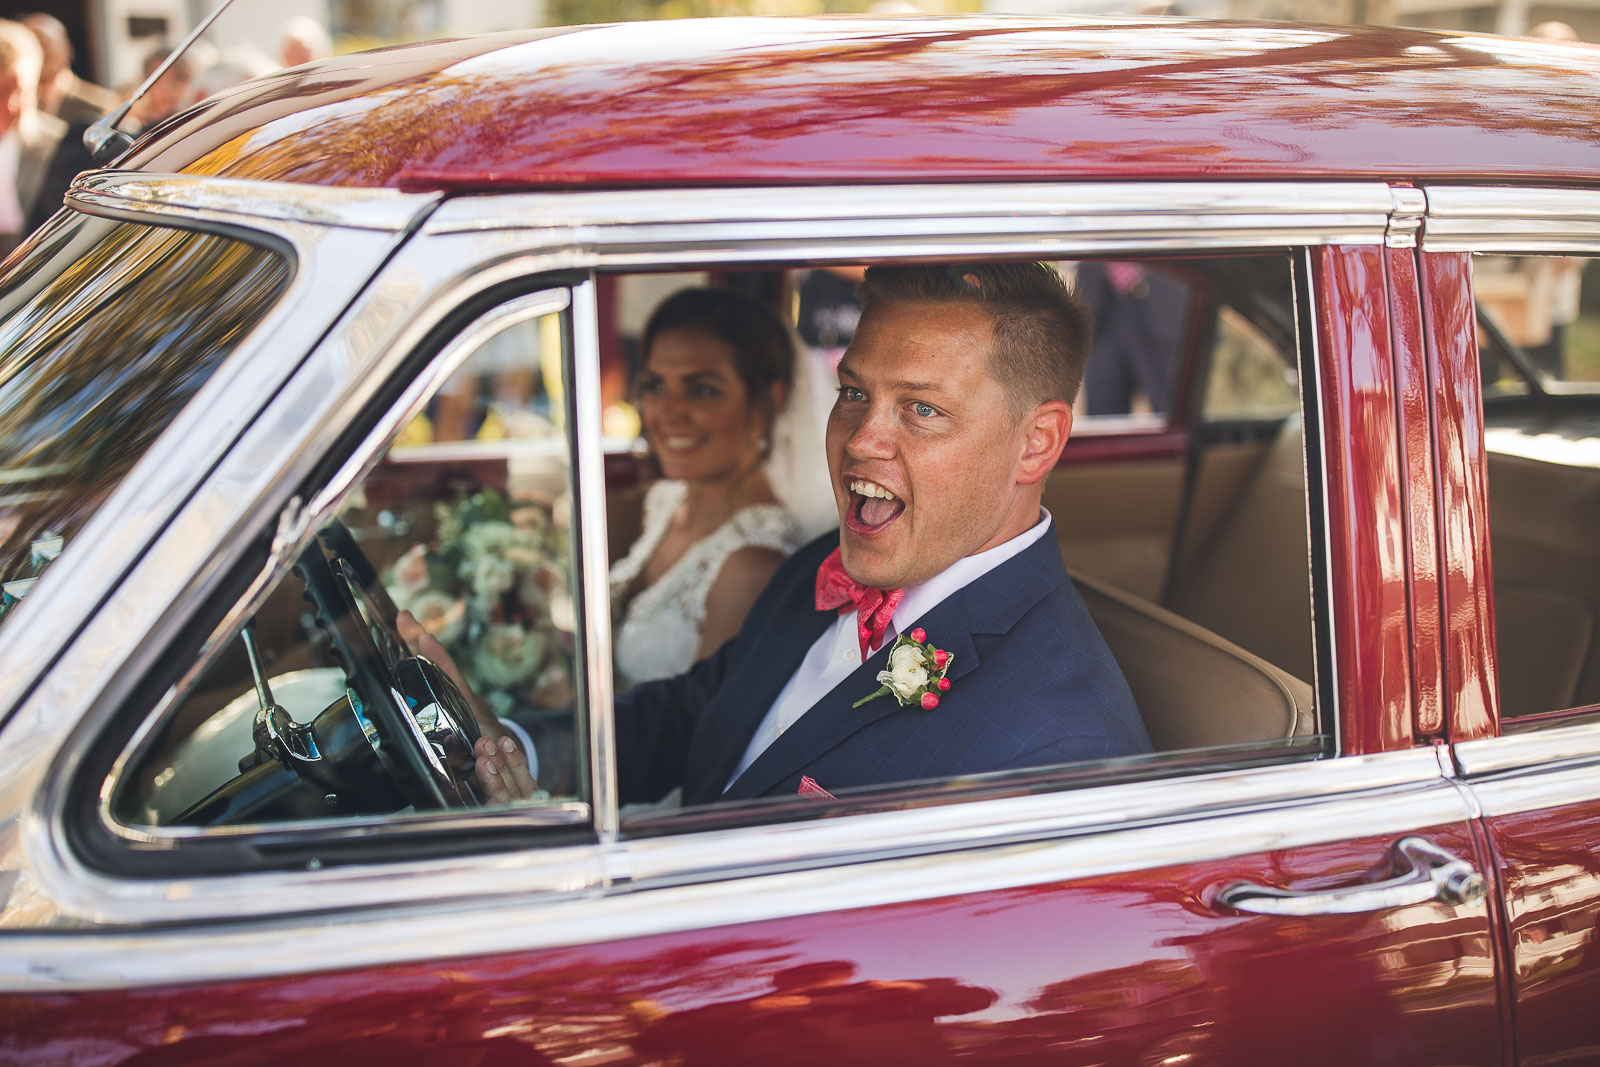 Wedding Days and Classic Cars